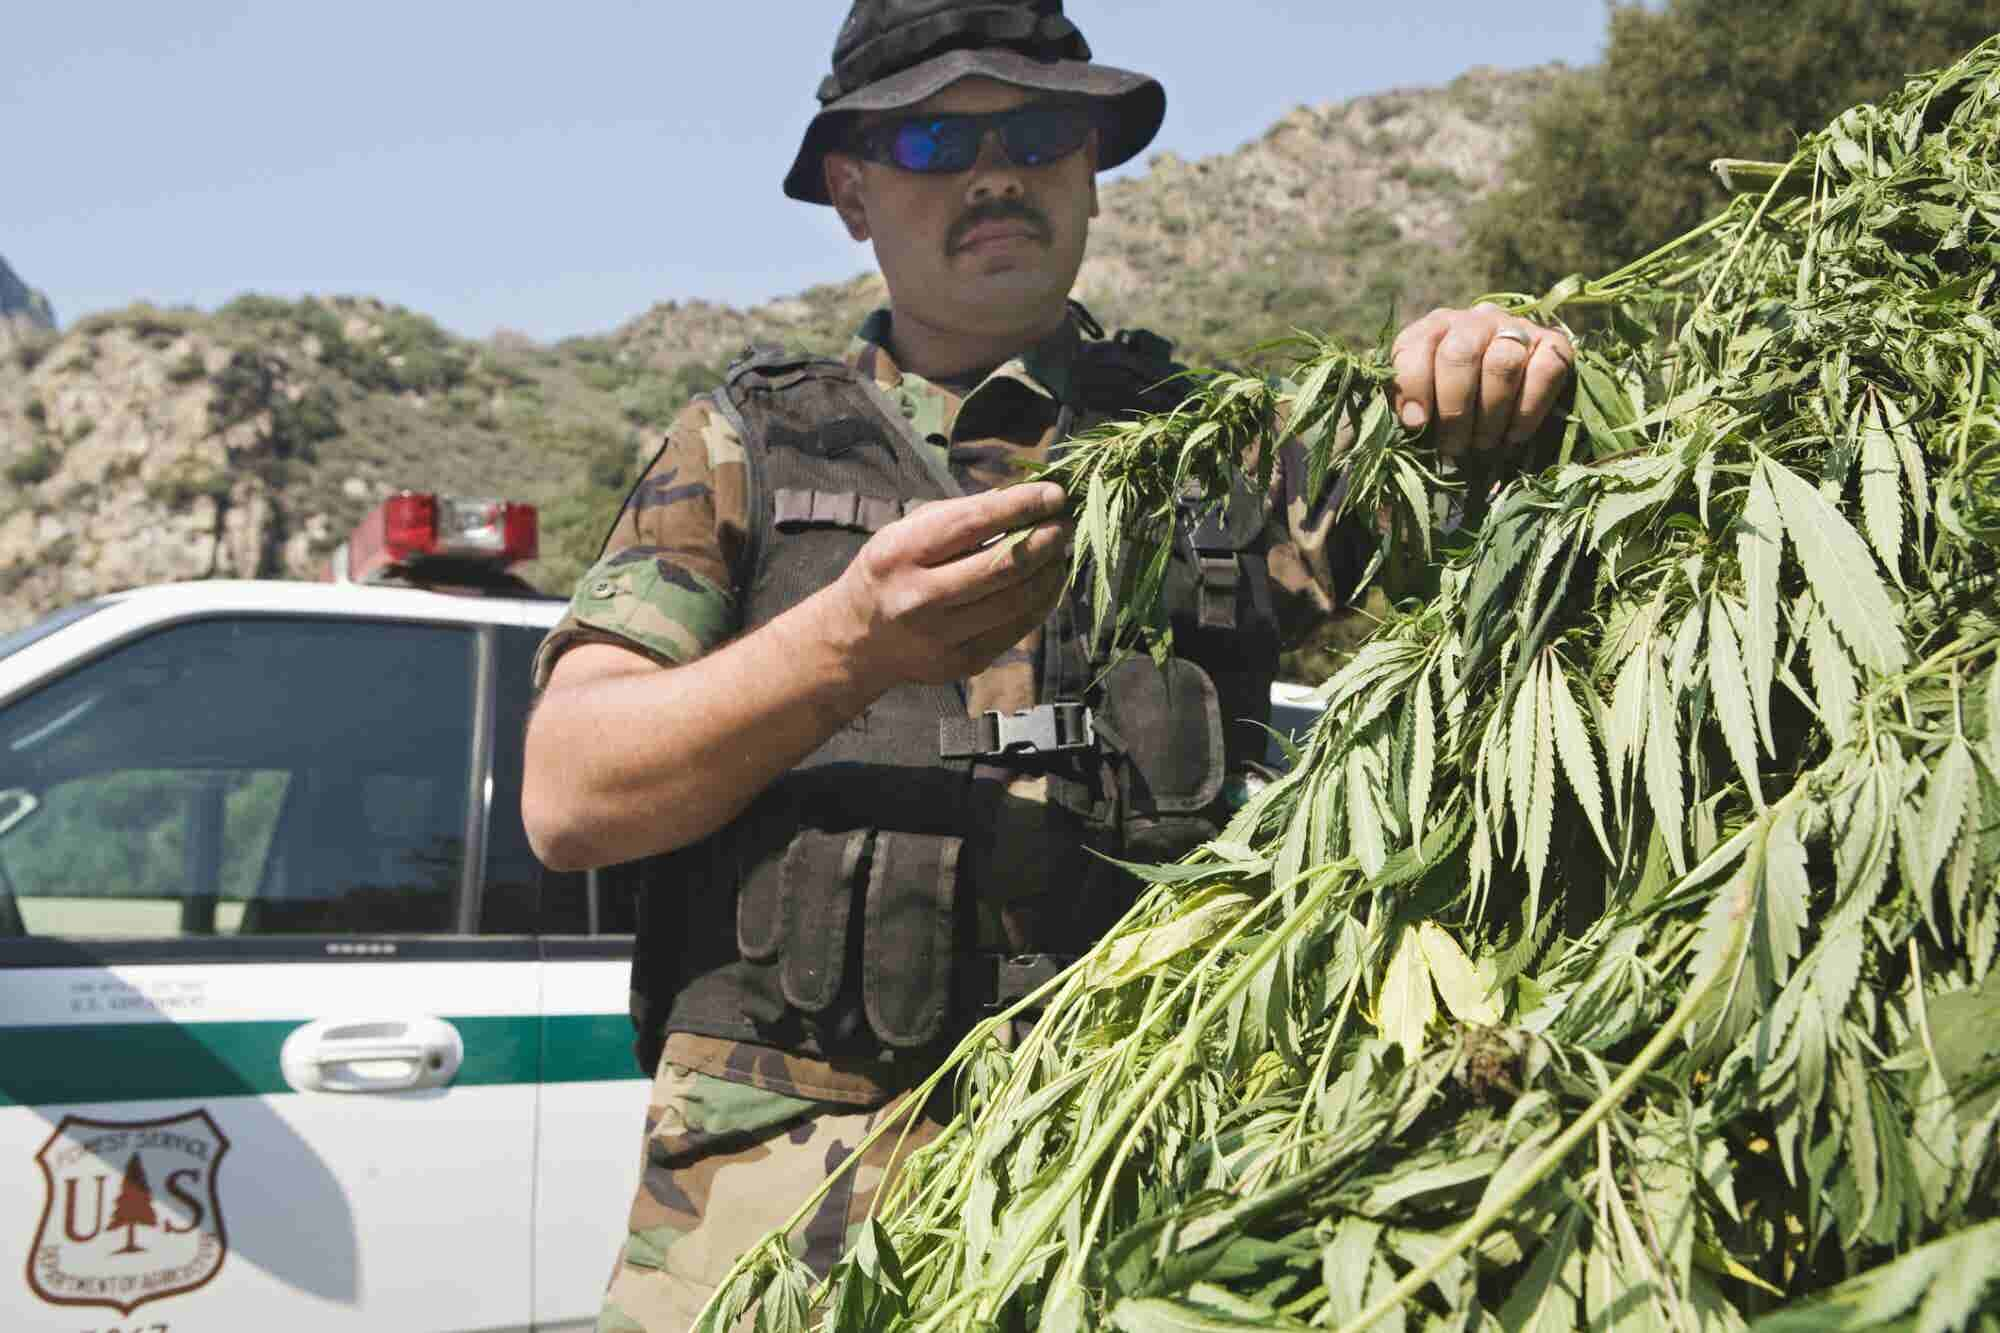 New California Law Makes it Easier to Erase Old Marijuana Convictions